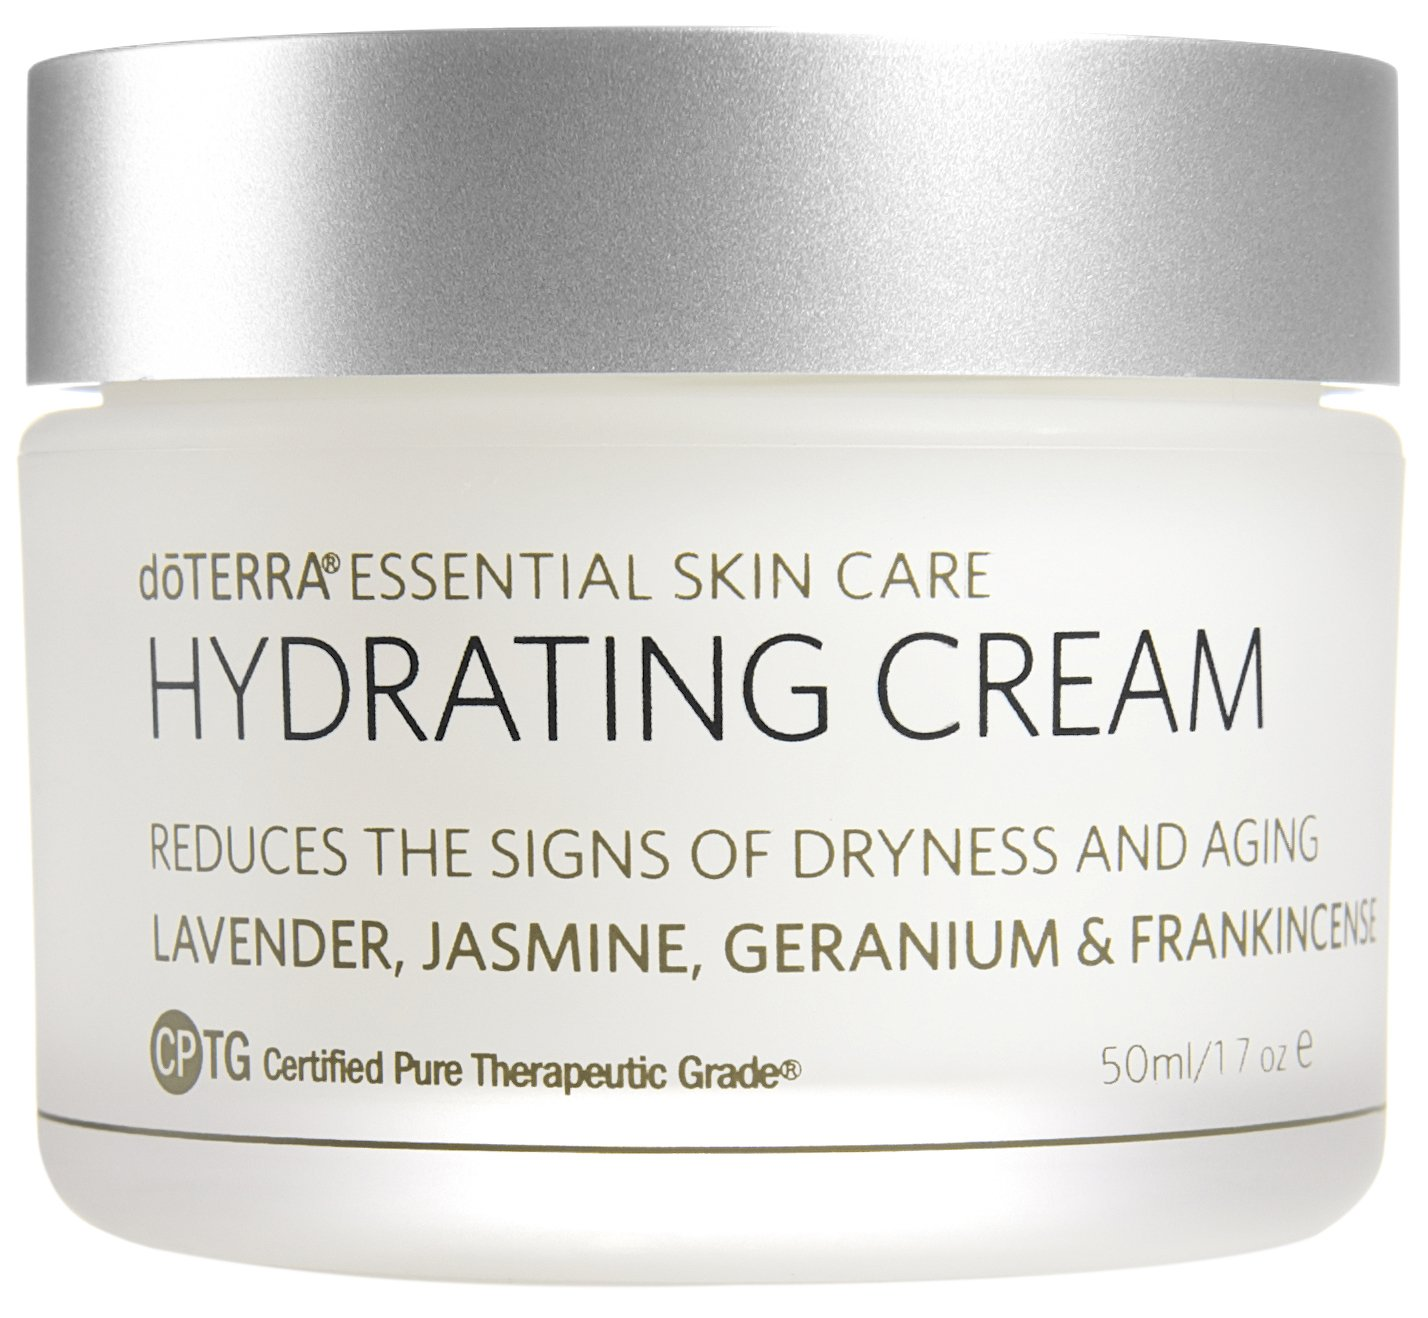 doTERRA - Hydrating Cream - Essential Skin Care Collection - 1.7 oz